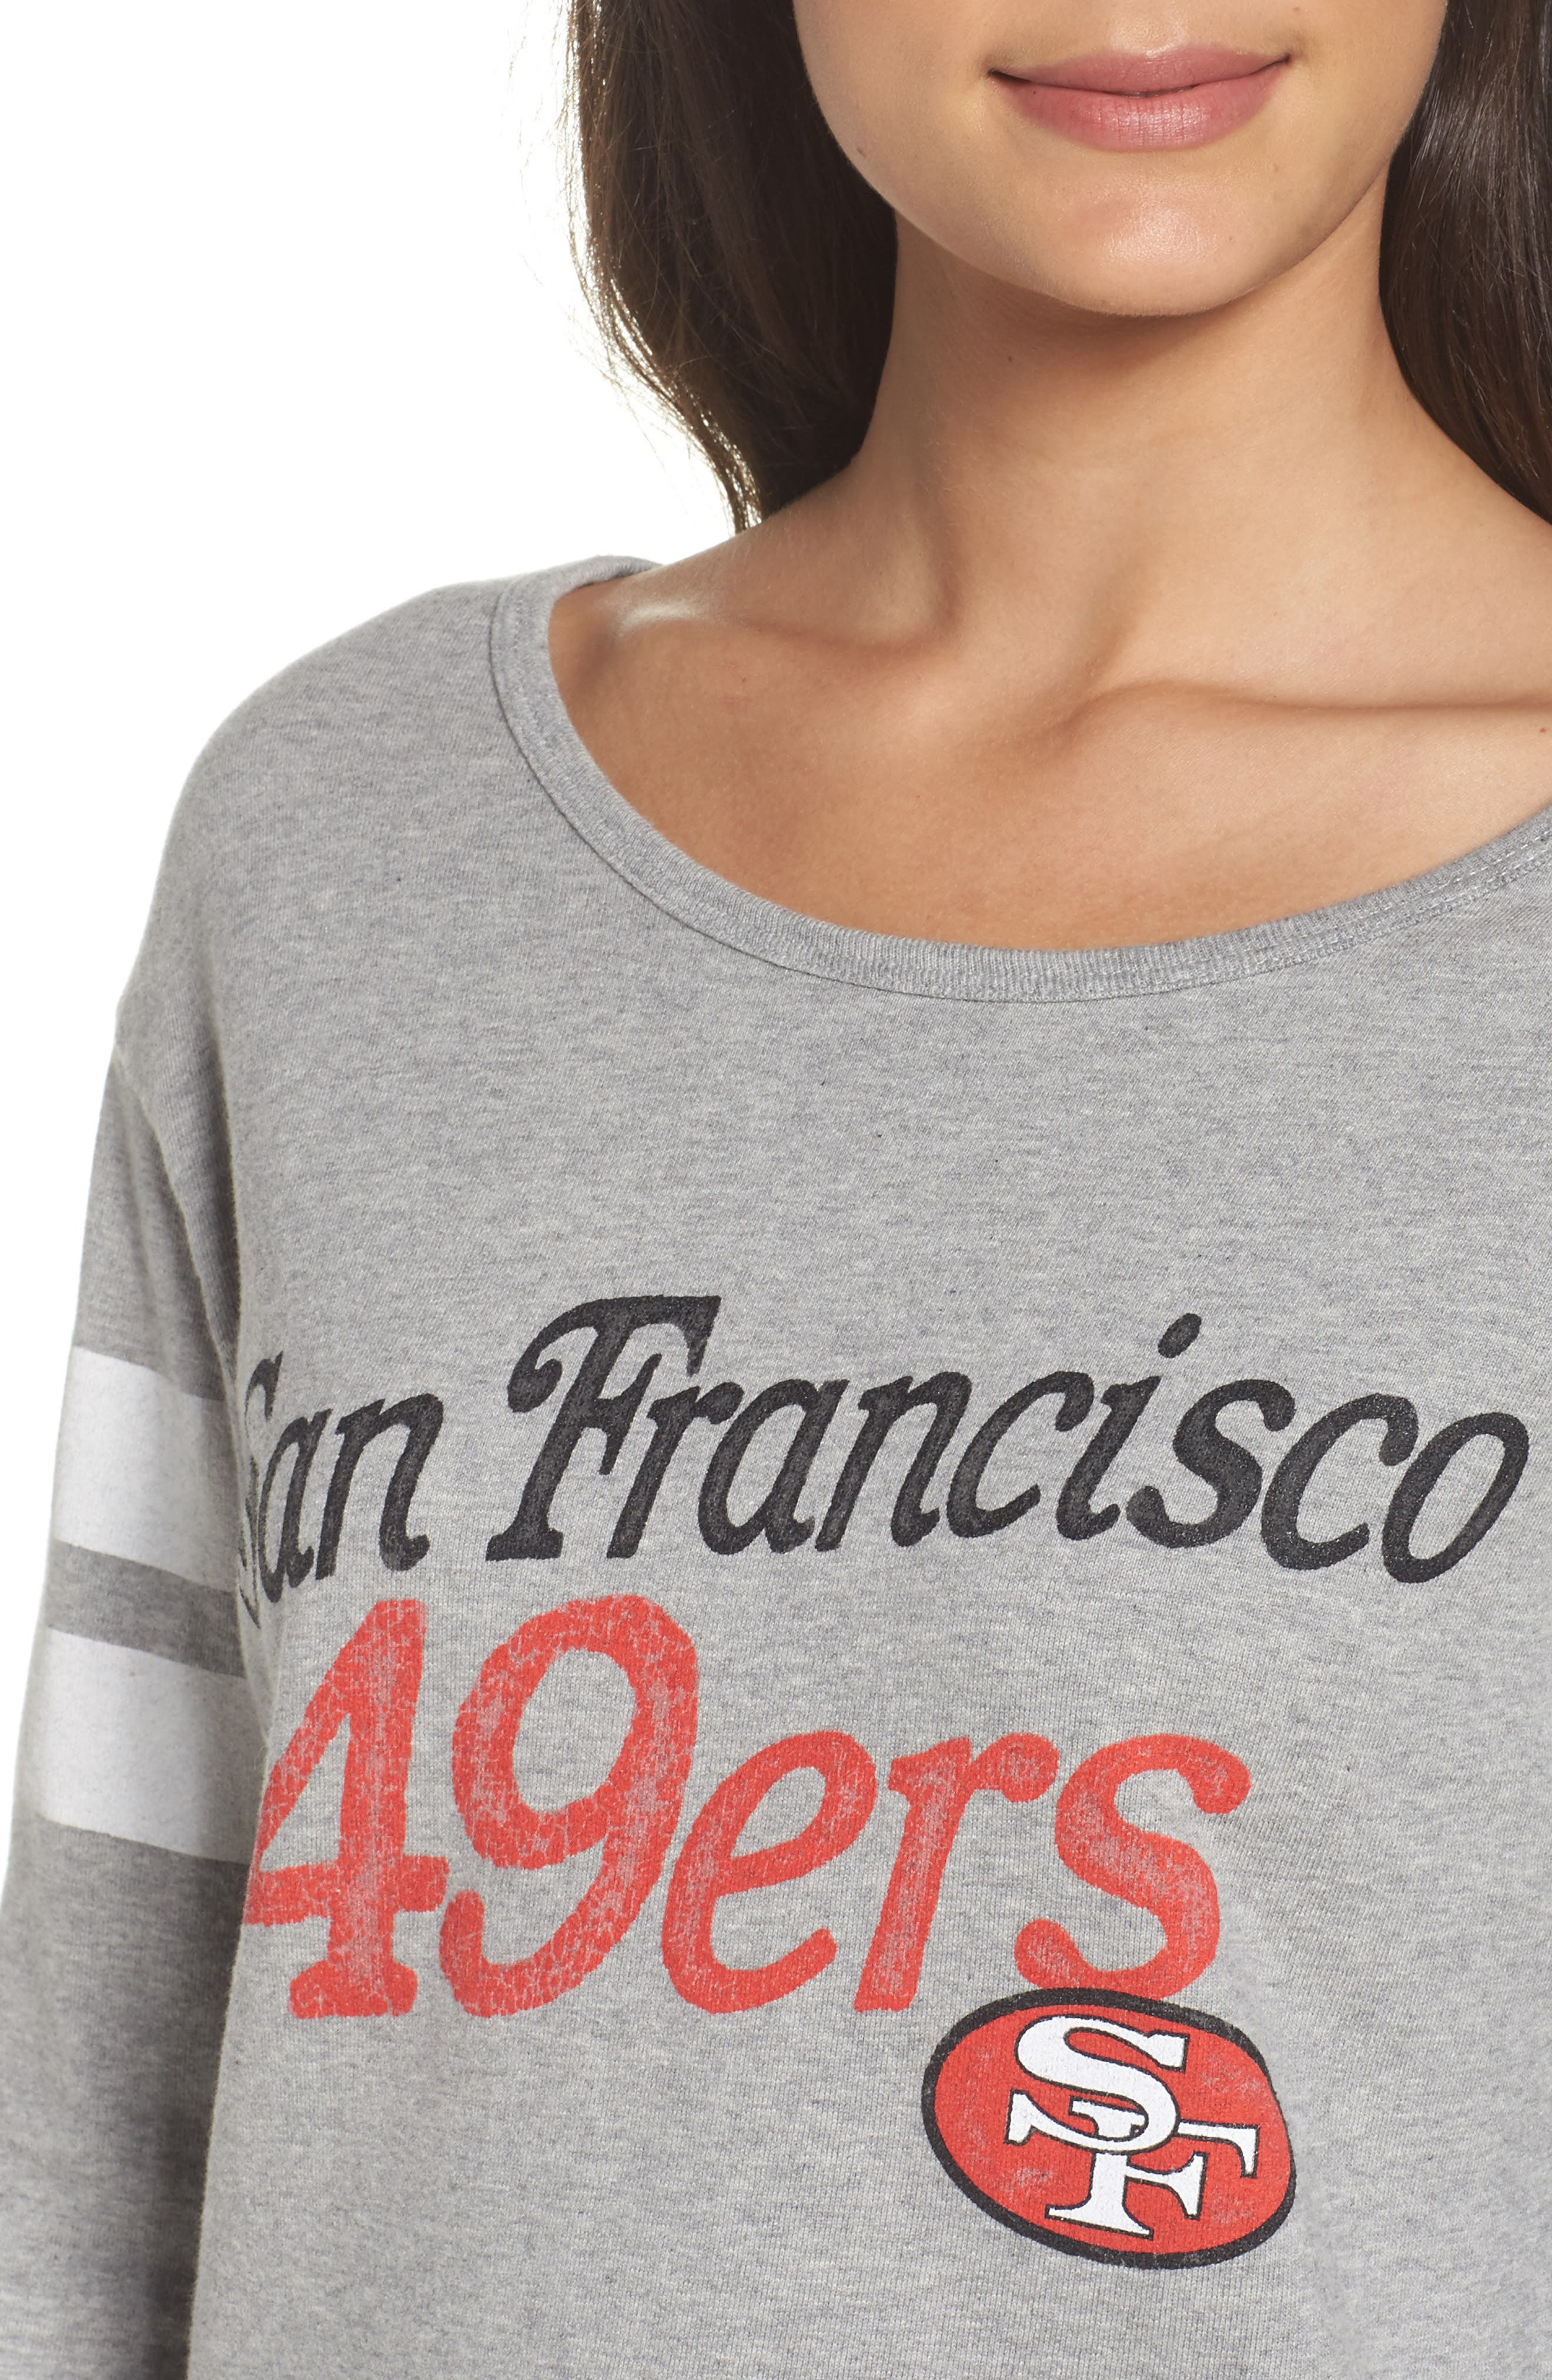 NFL San Francisco 49ers Champion Sweatshirt,                             Alternate thumbnail 5, color,                             Heather Grey